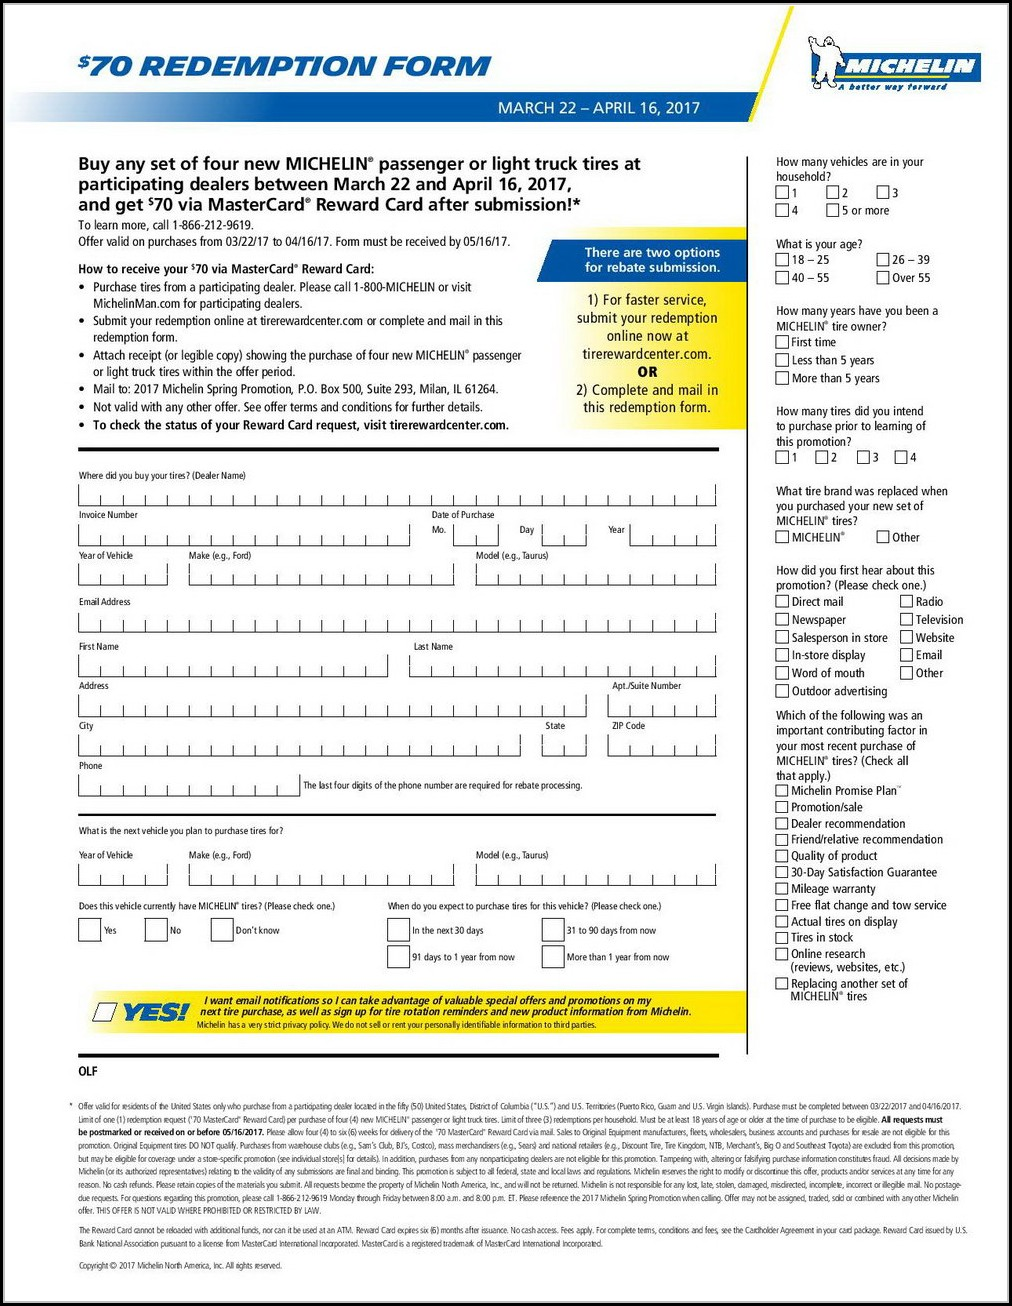 Michelin Tire Employee Rebate Form